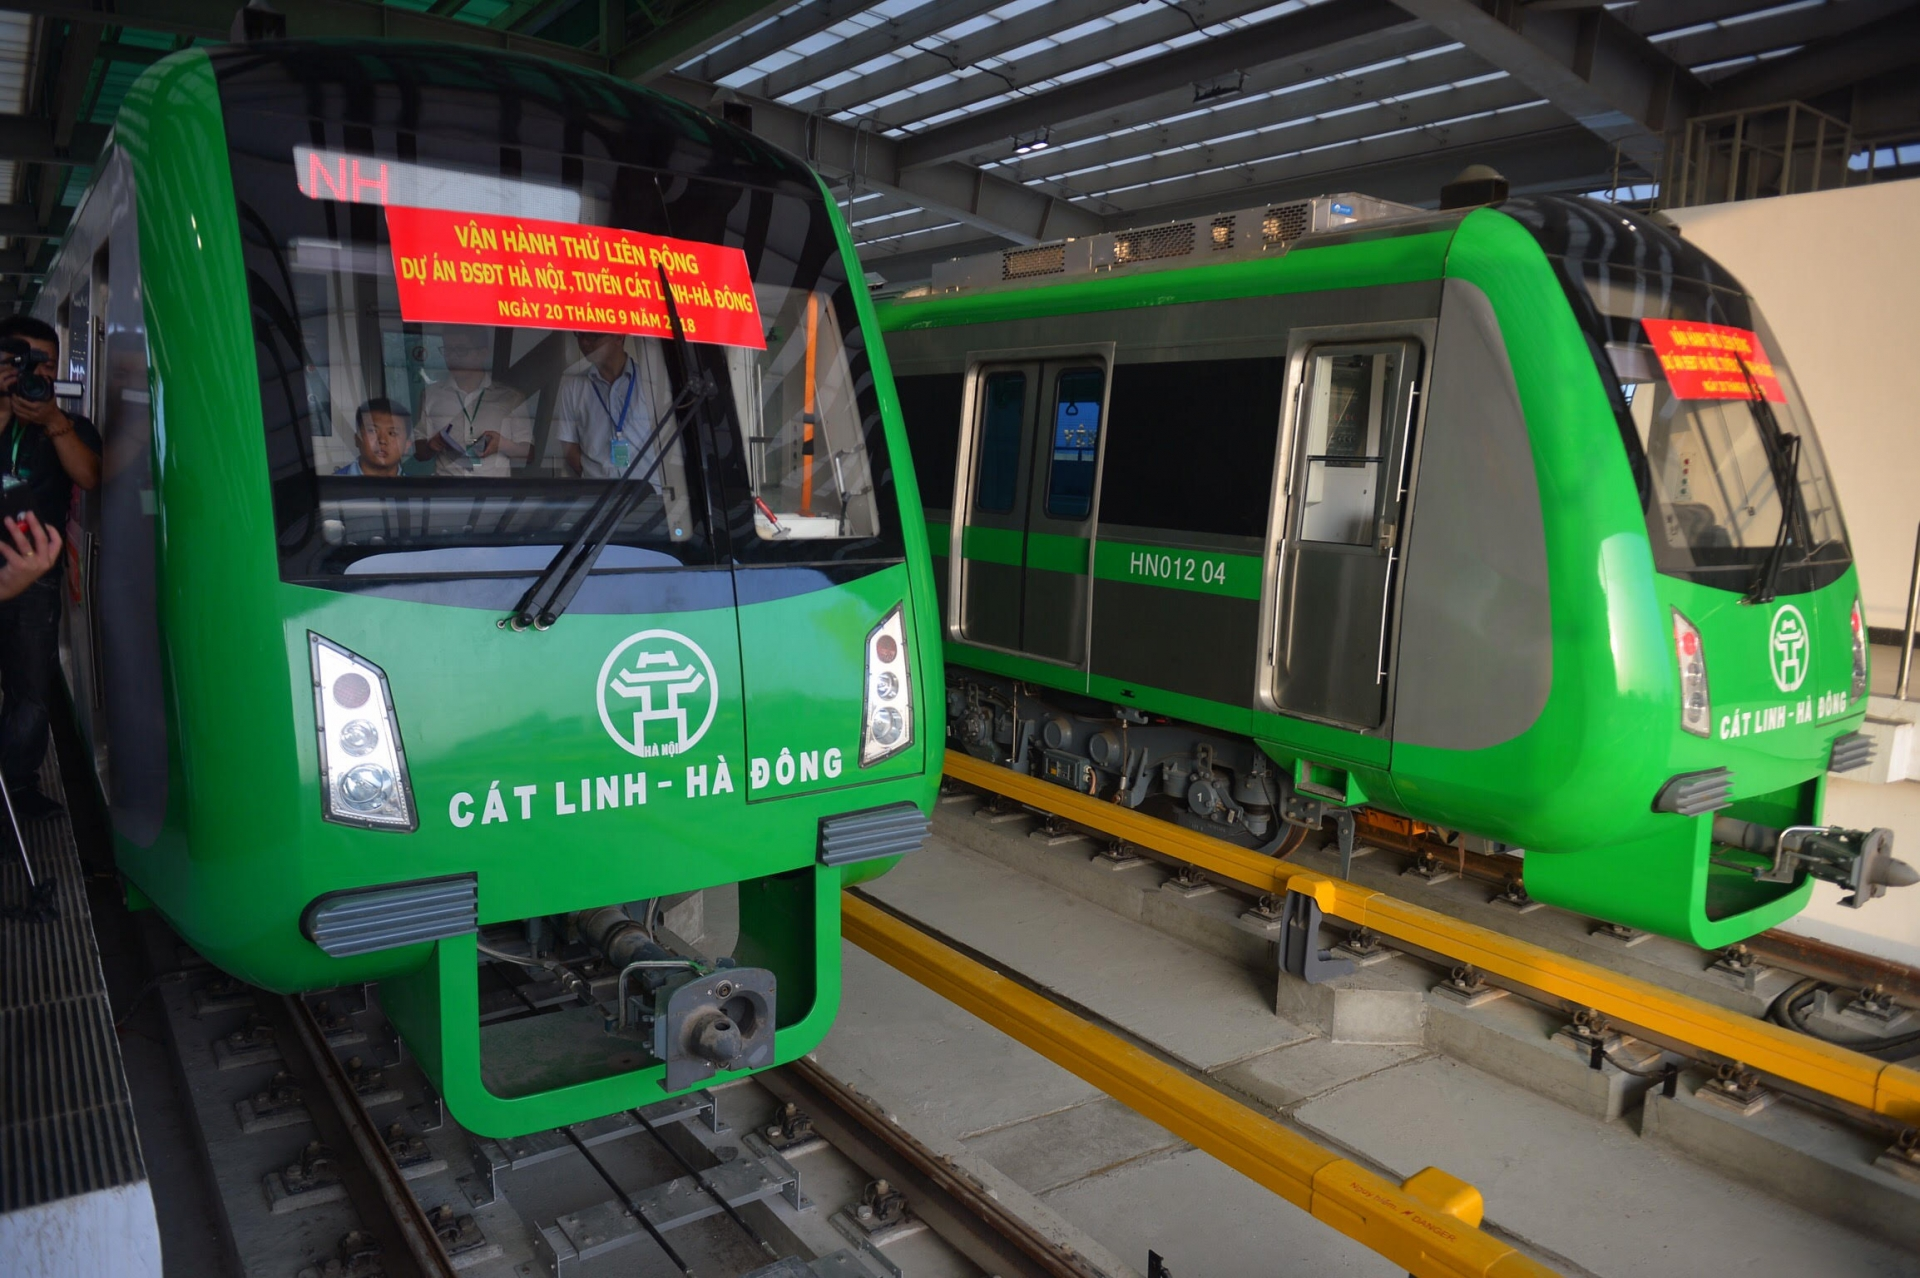 cat linh hadong elevated urban railway first test run